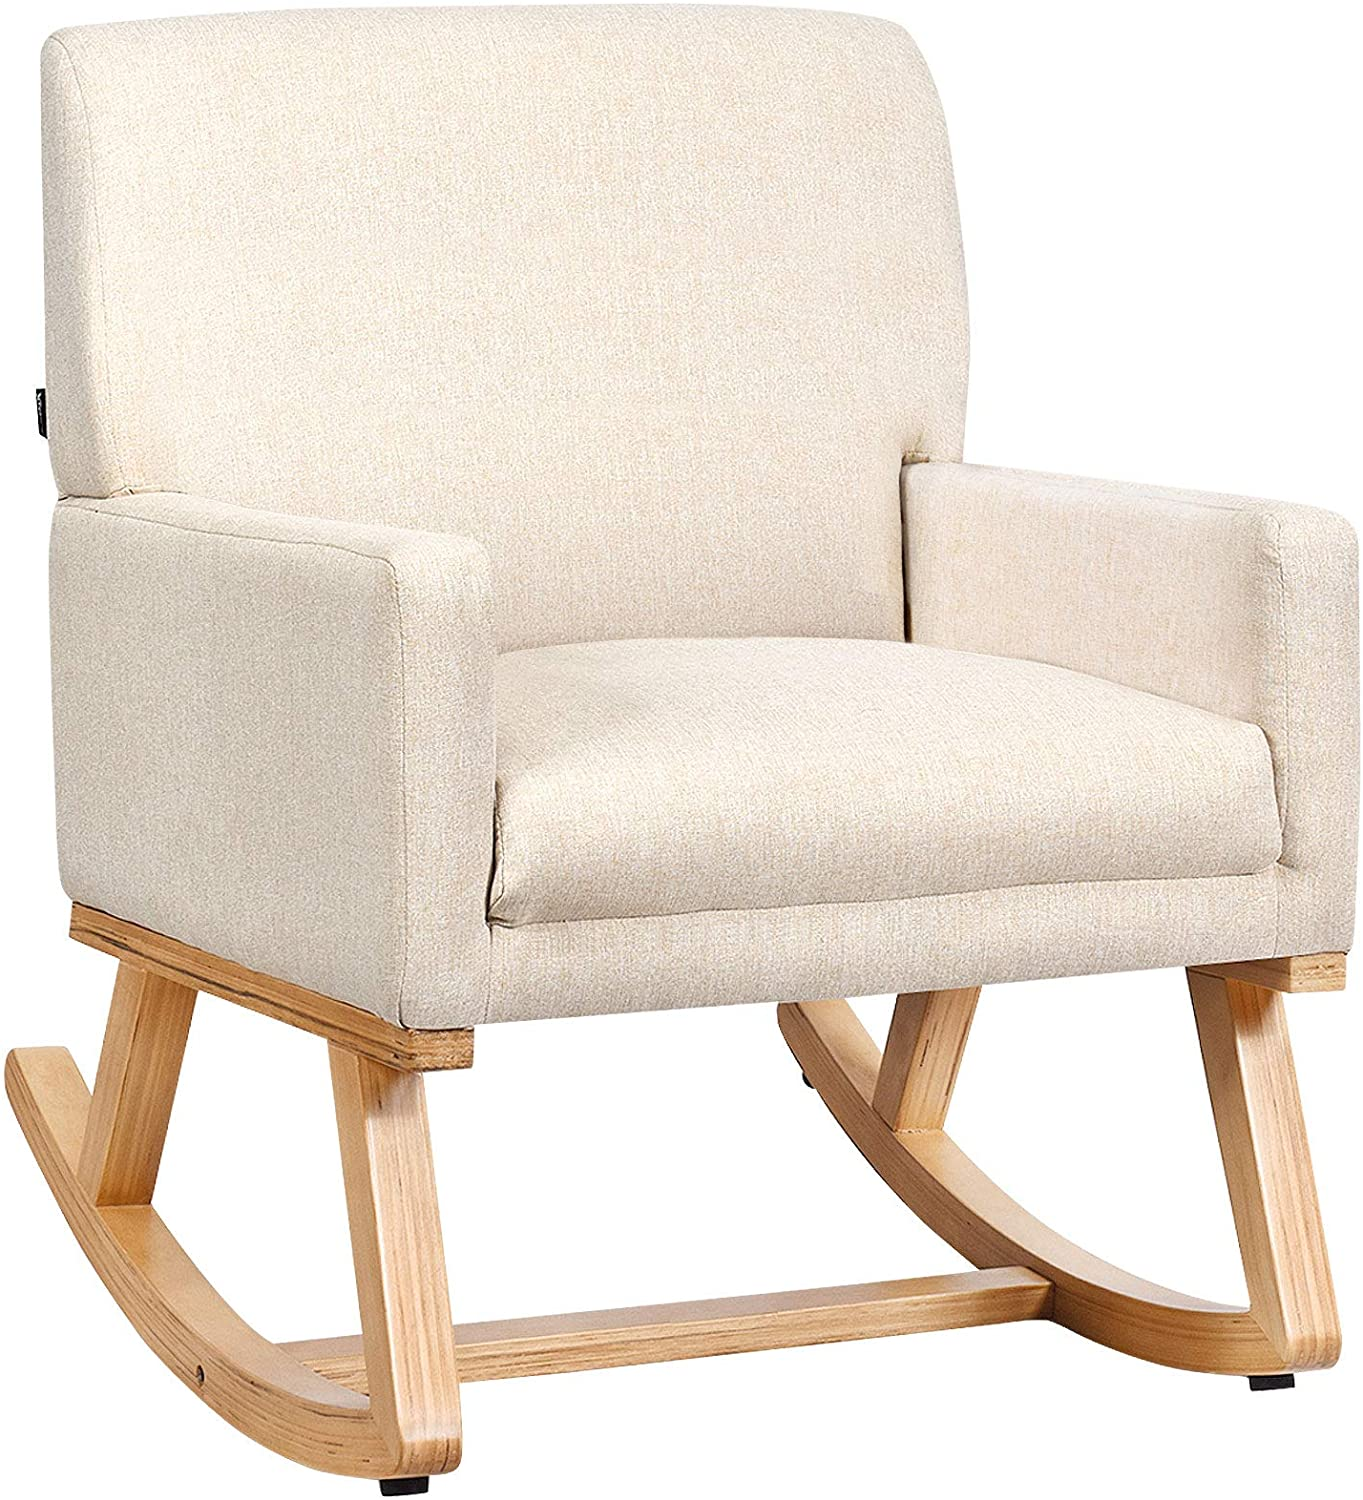 816XwZNj3yL. AC SL1500 - What Are The Best Living Room Chair For Lower Back Pain - ChairPicks